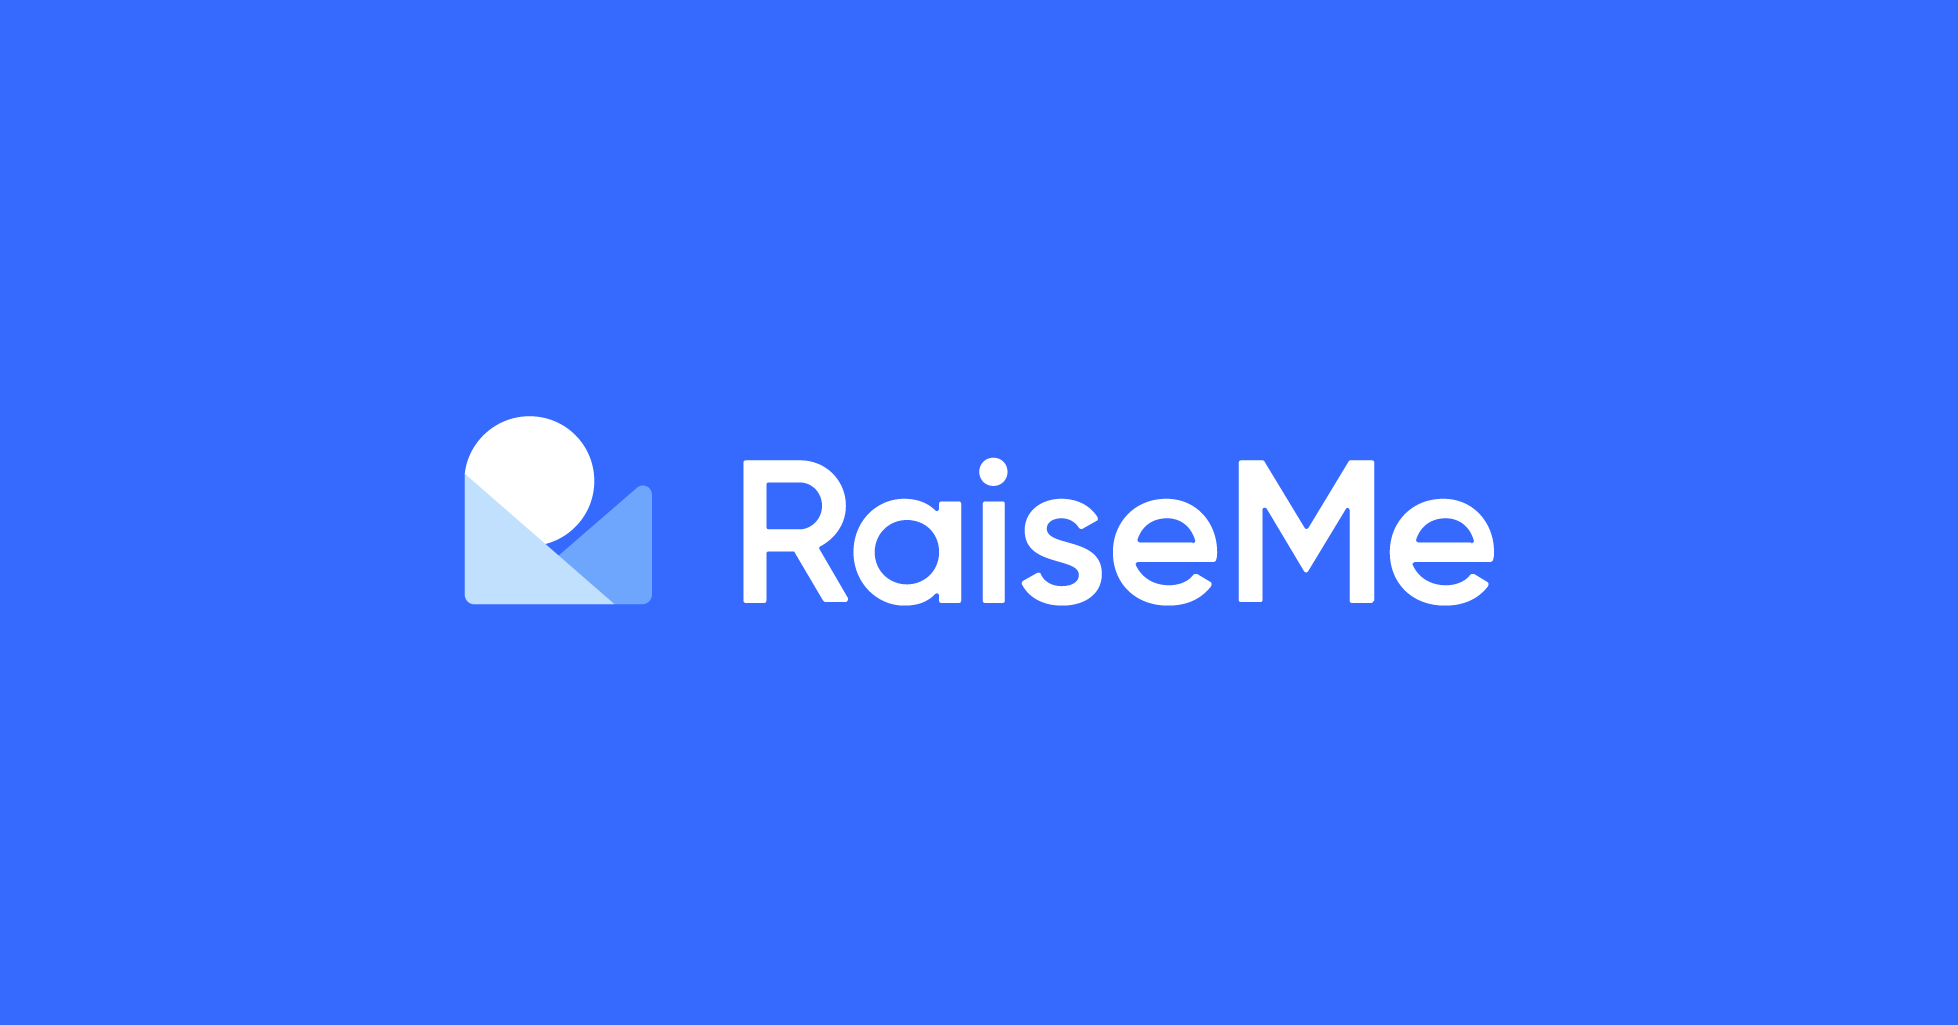 RaiseMe | Earn college scholarships as early as 9th grade